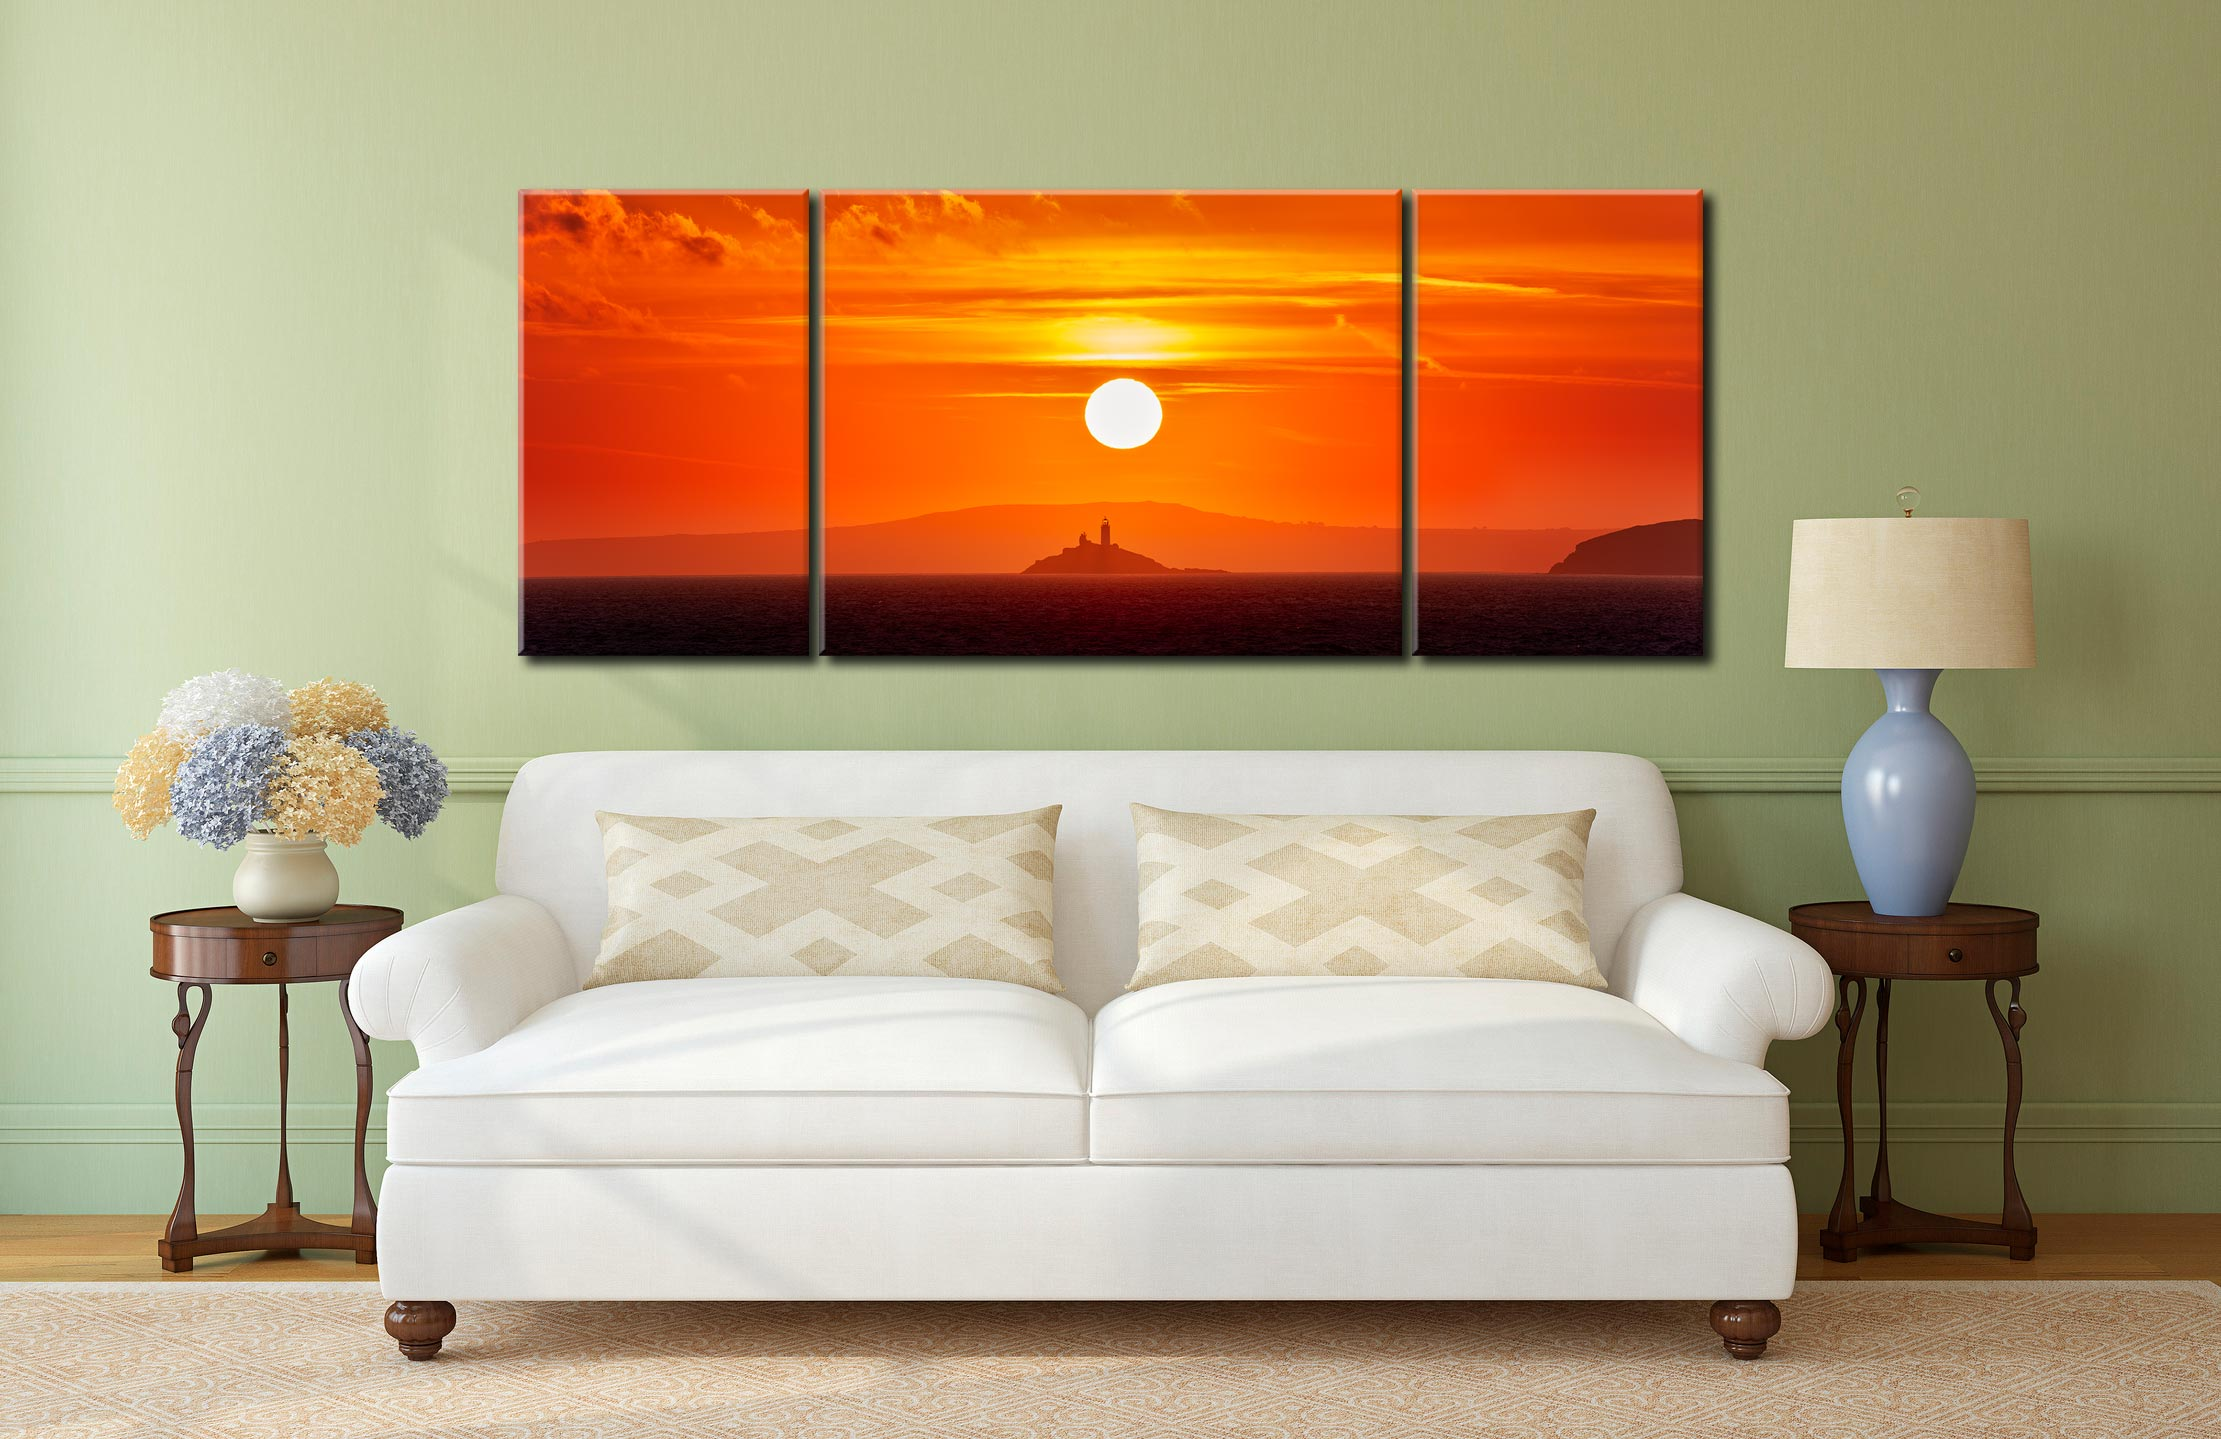 Godrevy Lighthouse Sunrise - 3 Panel Wide Mid Canvas on Wall